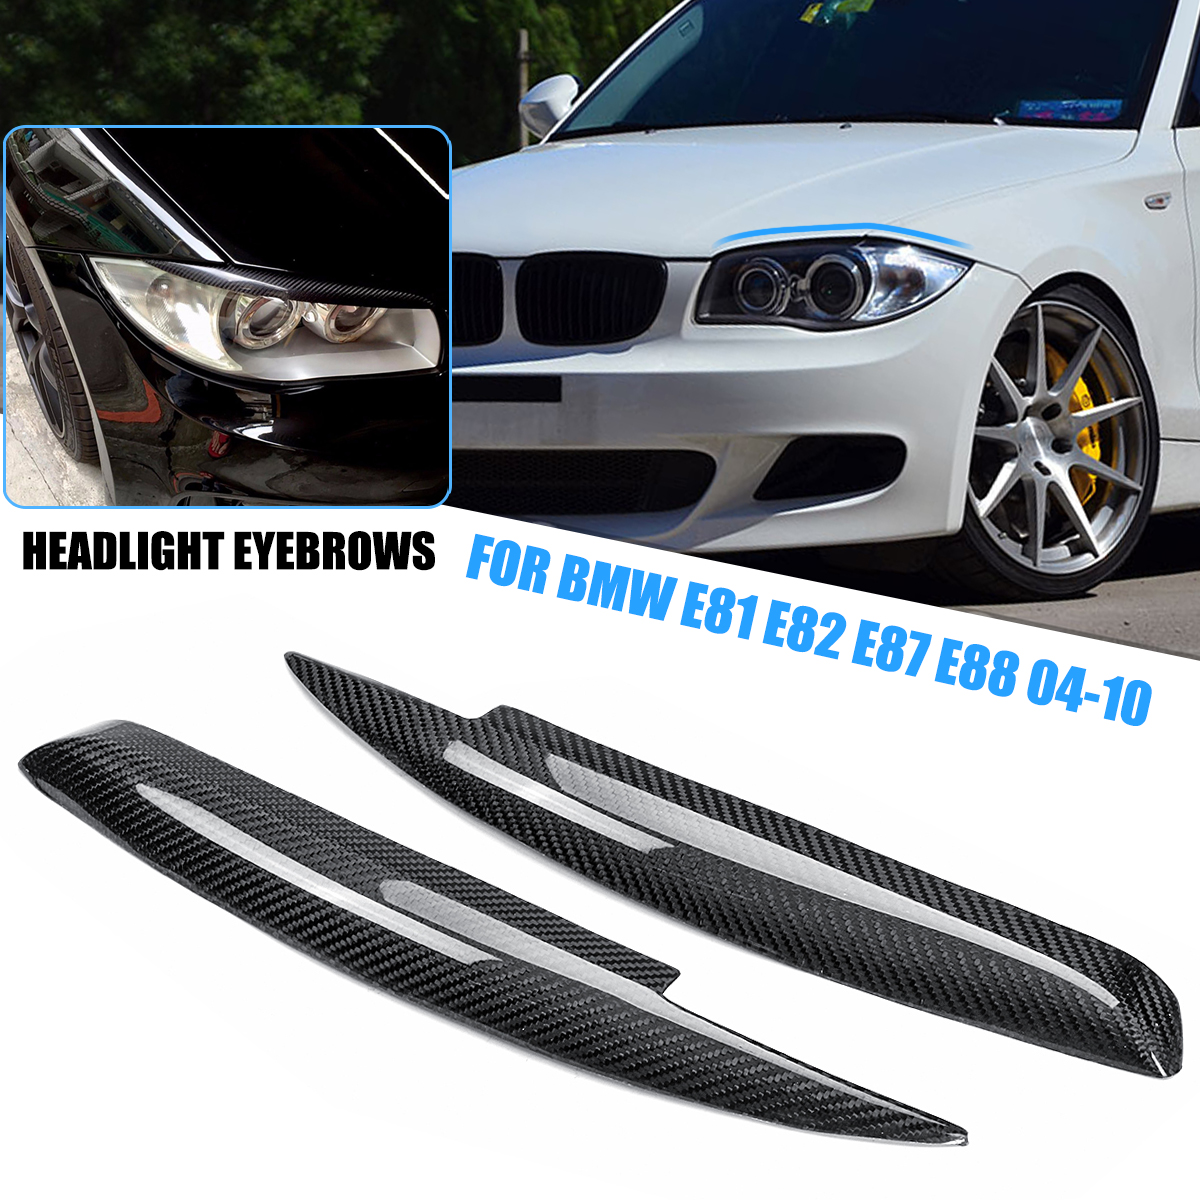 Carbon Fiber Car Headlight Eyebrows Eyelids Cover For BMW E81 E82 E87 E88 2004-2010 стоимость